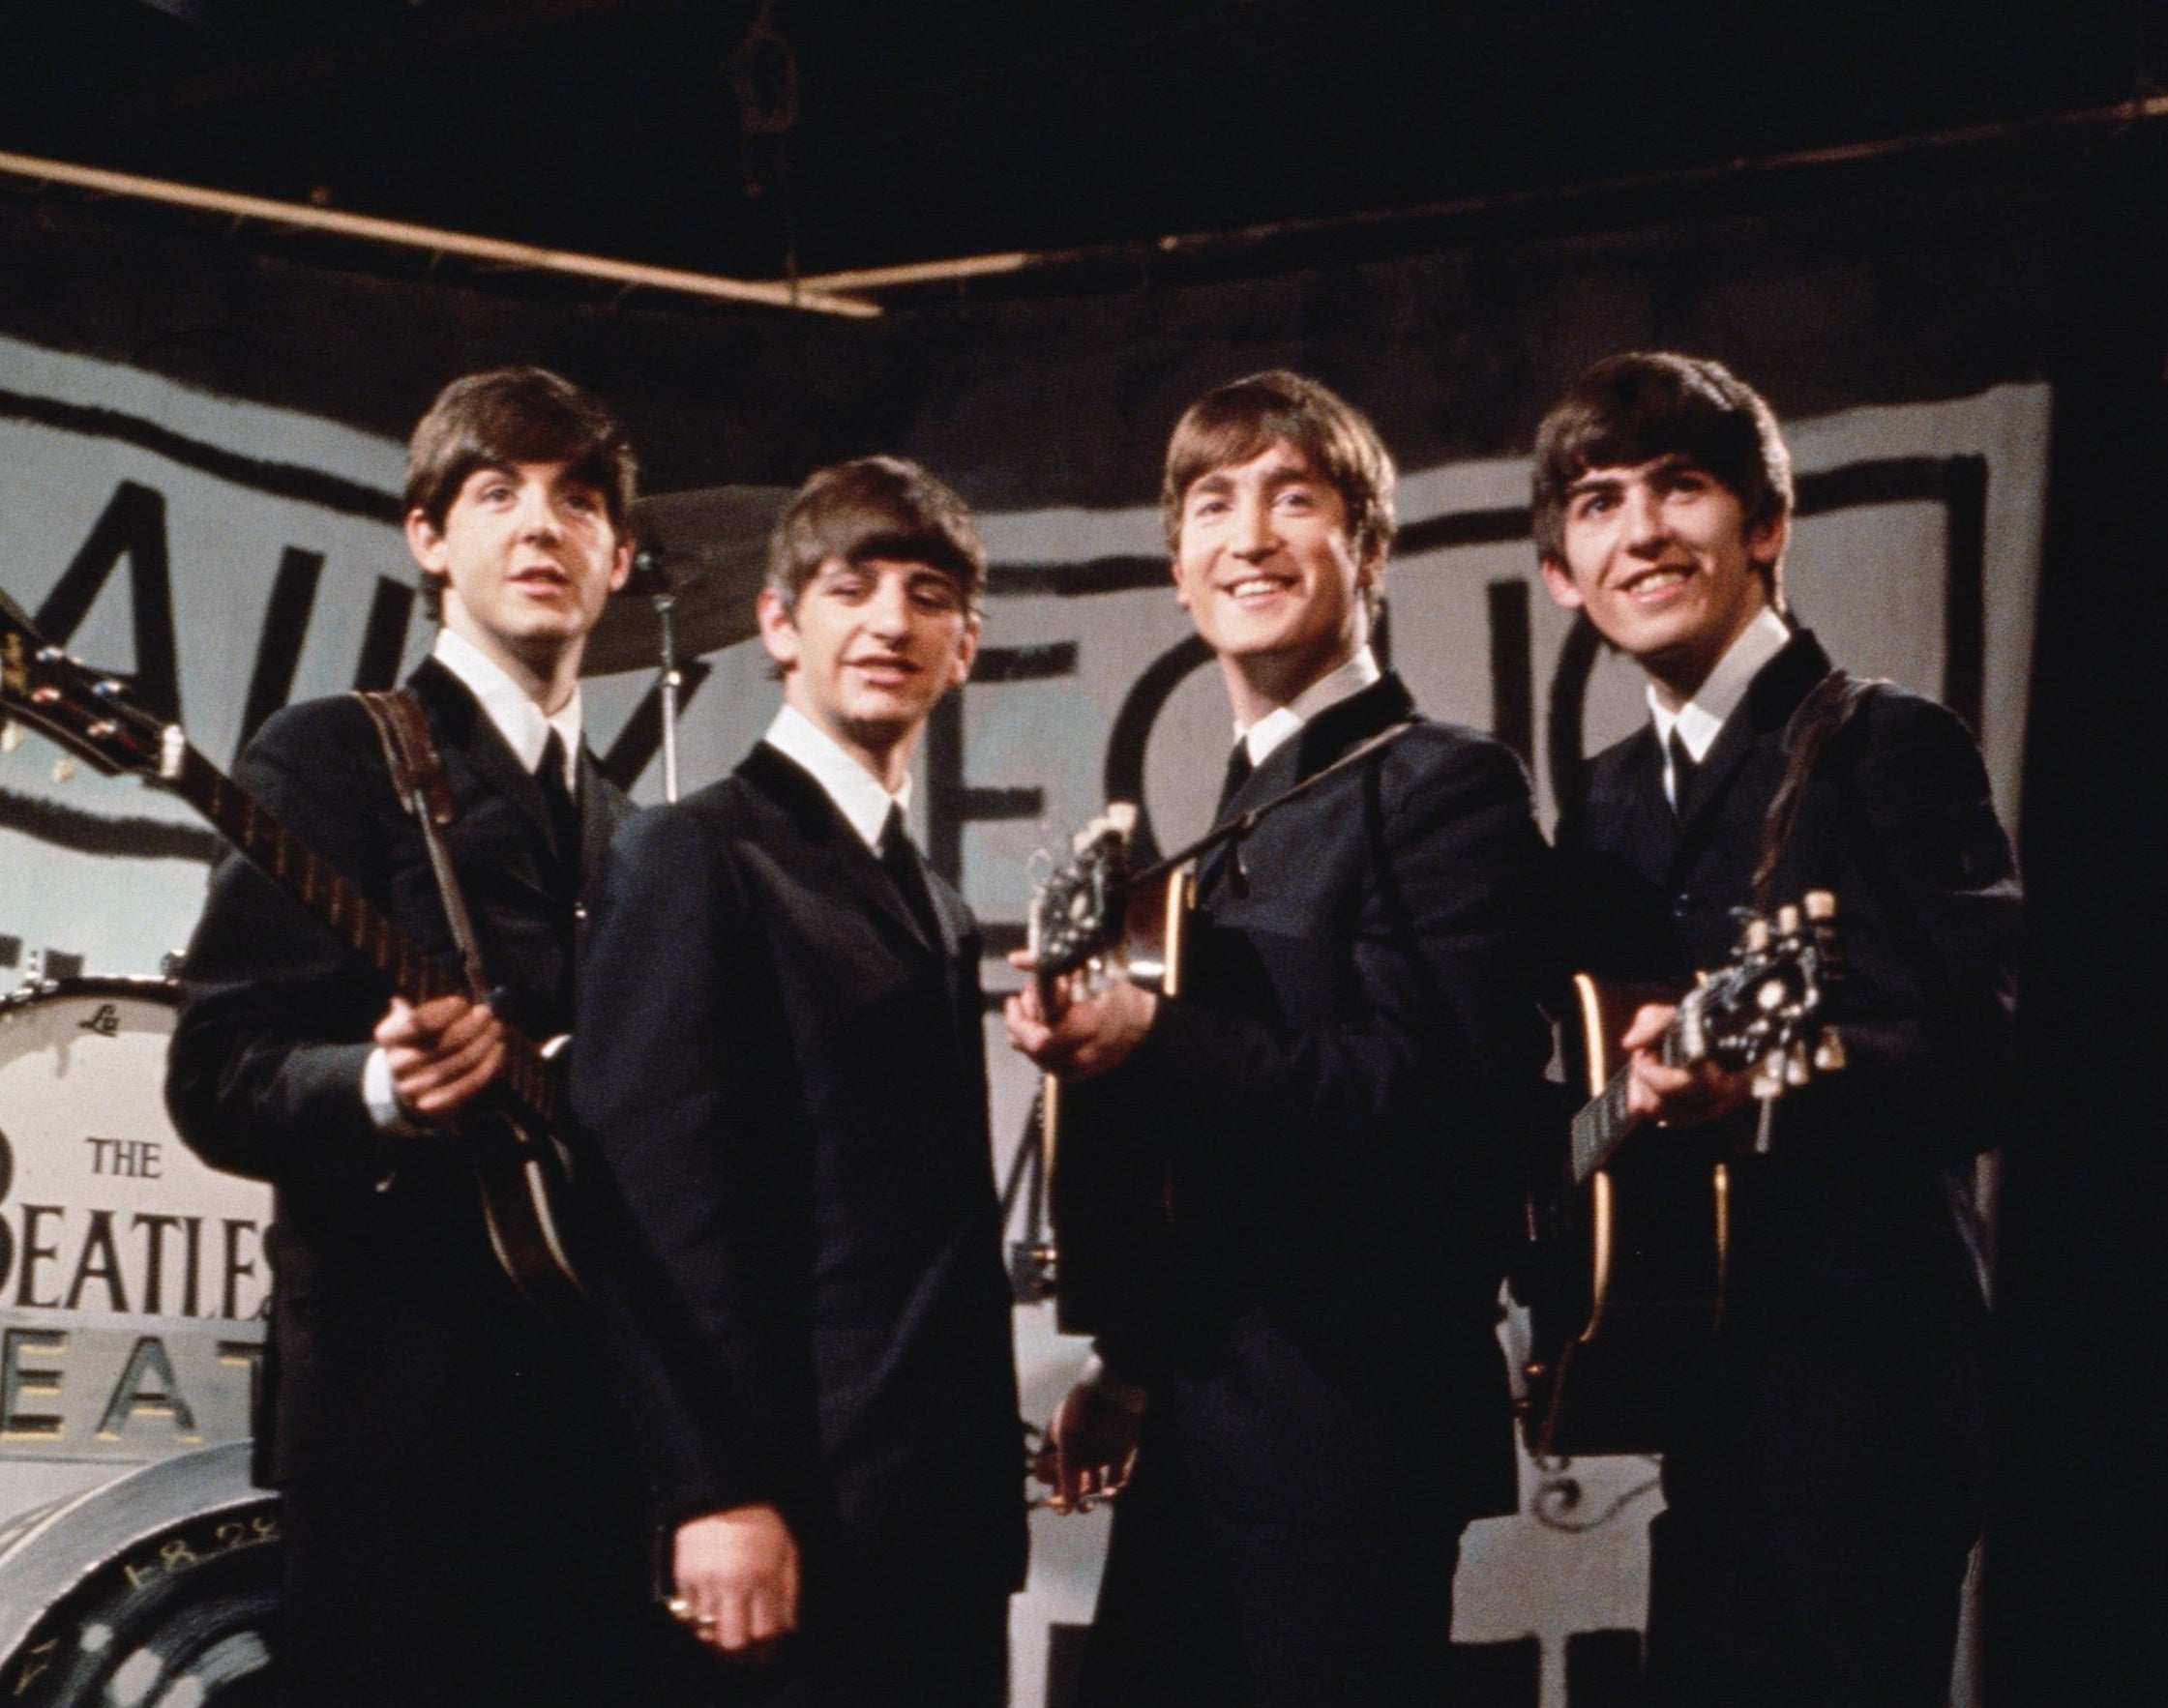 A photo of the Beatles in 1963